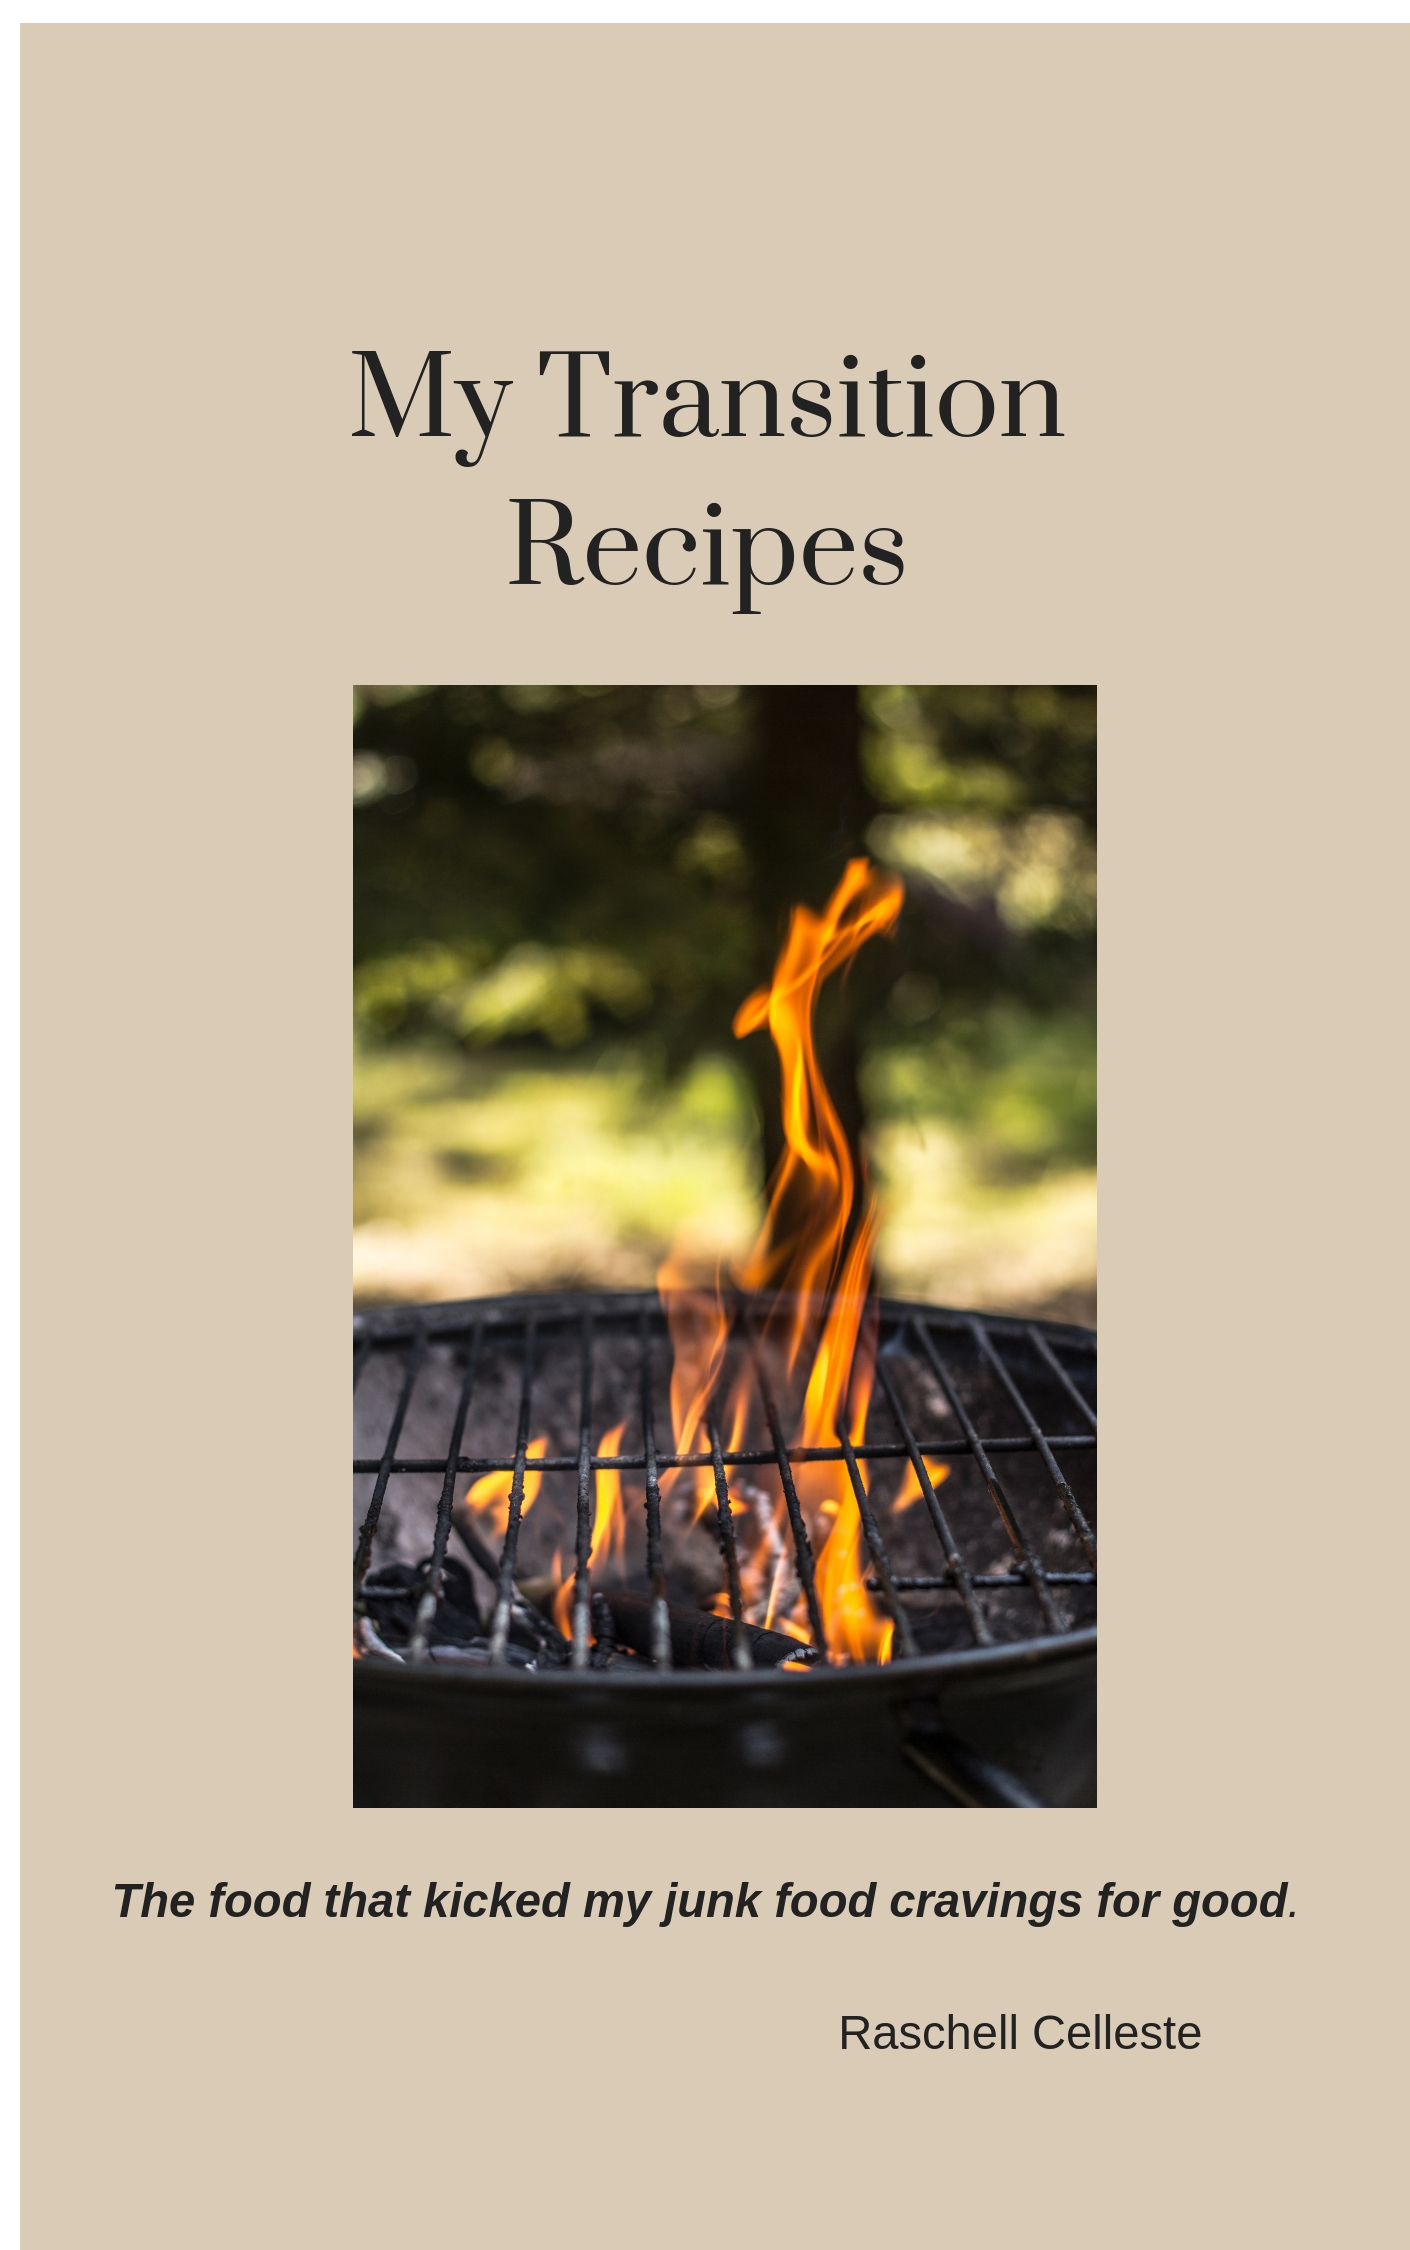 My Transition Recipes - The food I ate that kicked my cravings for good #misshomemade